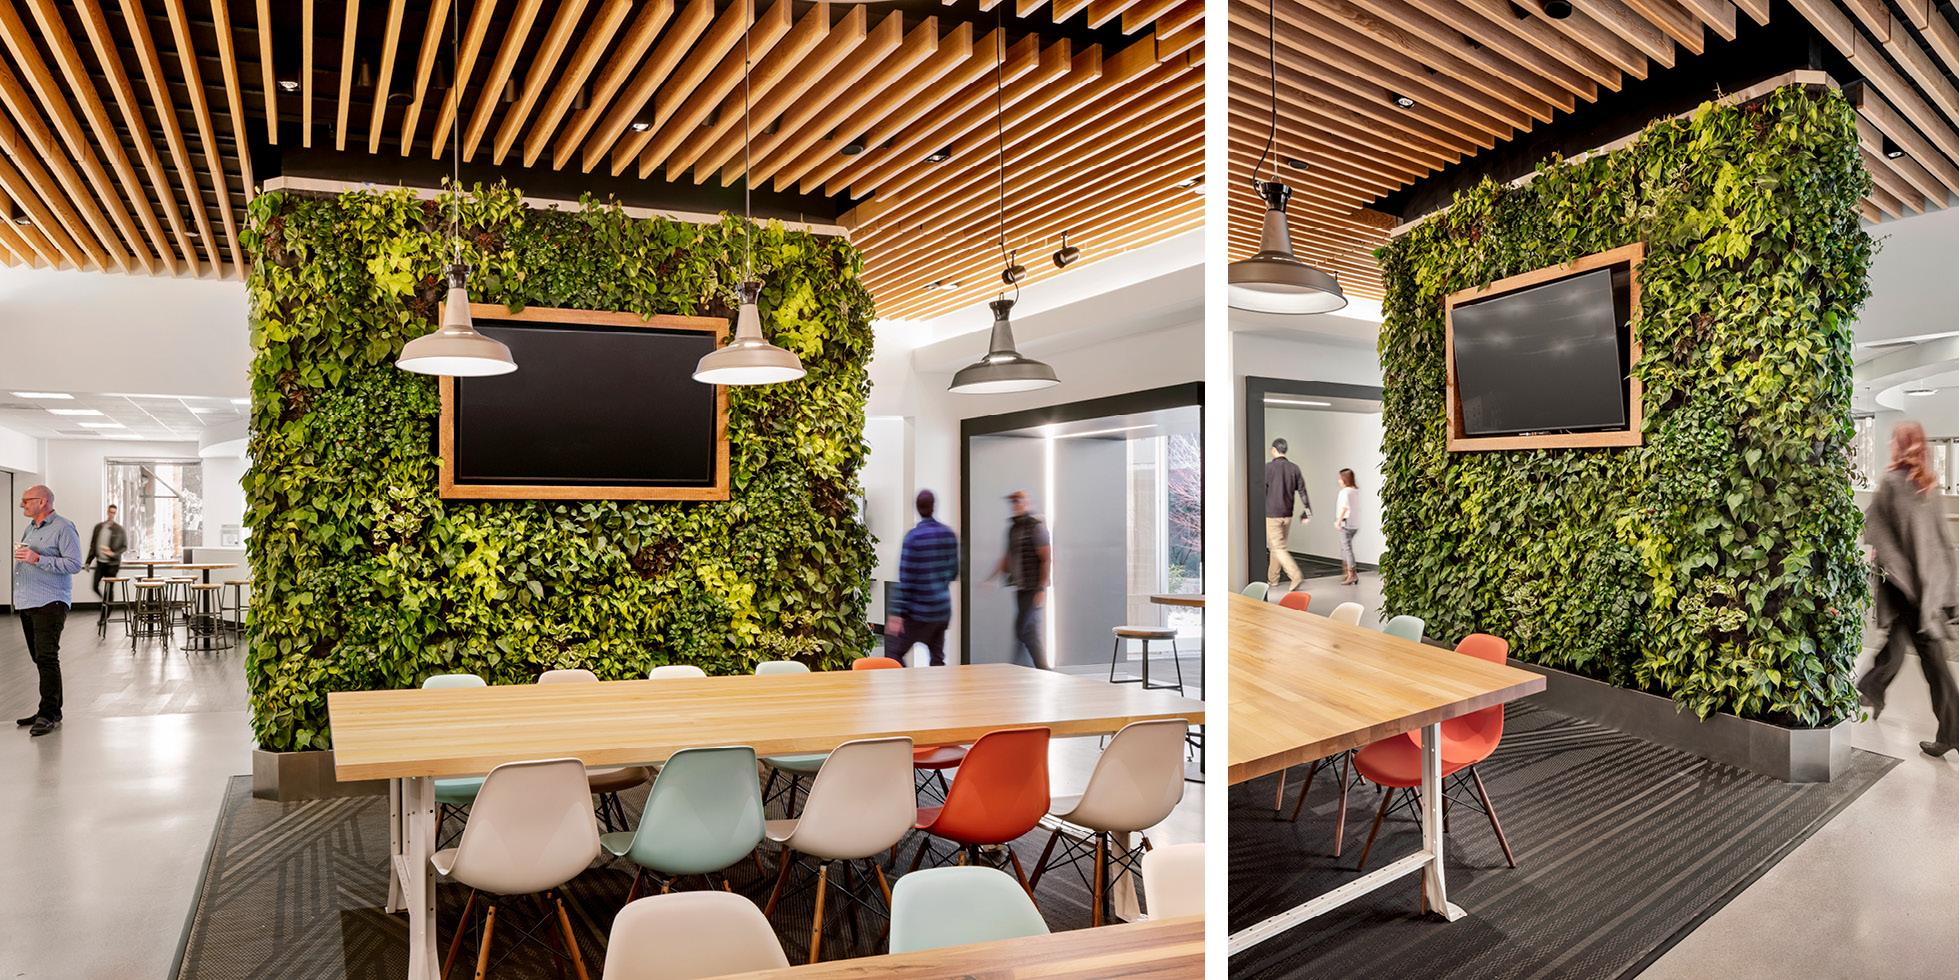 Plantronics Cafe Living Wall by Habitat Horticulture - View 3